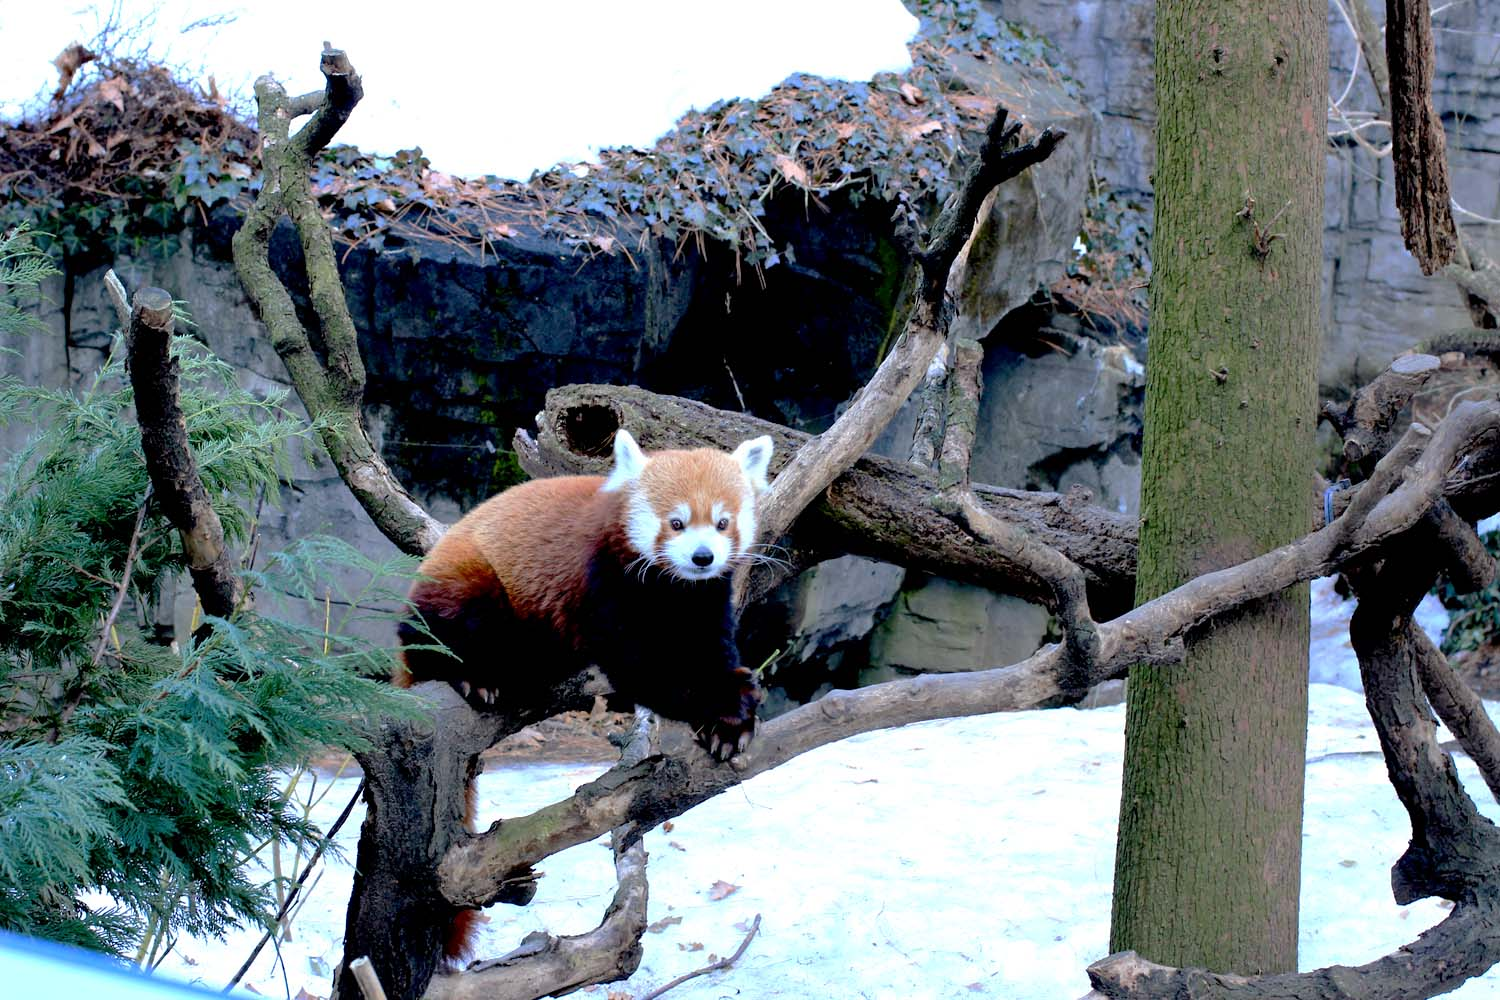 Red Panda at Central Park Zoo; Image:  Laura Messersmith